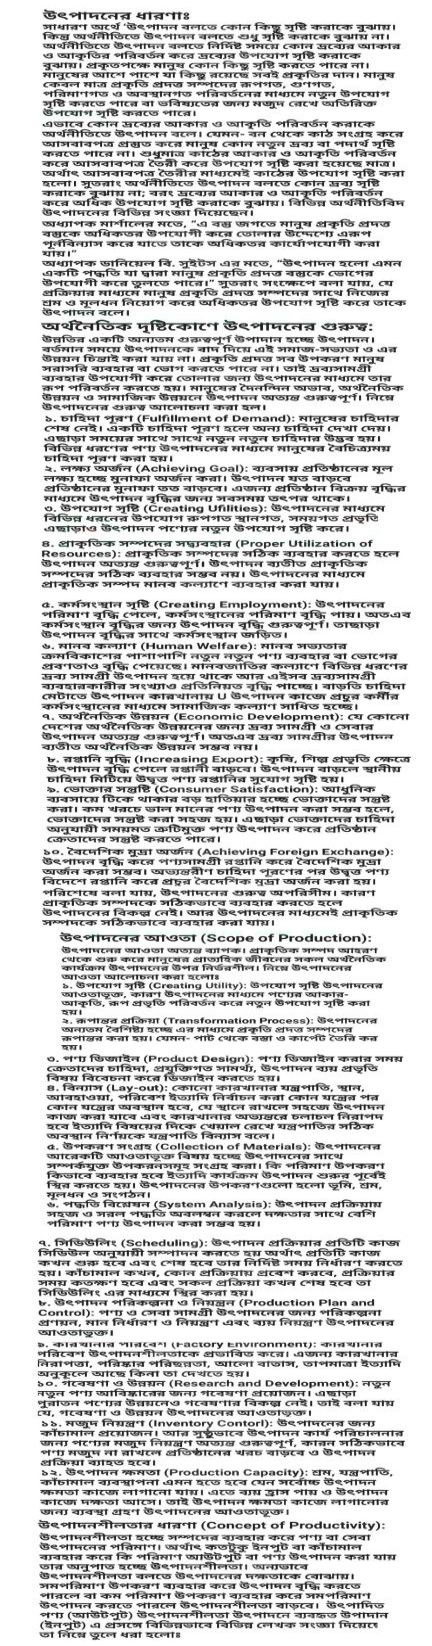 HSC Production Management & Marketing Assignment Answer 2022 5th Week